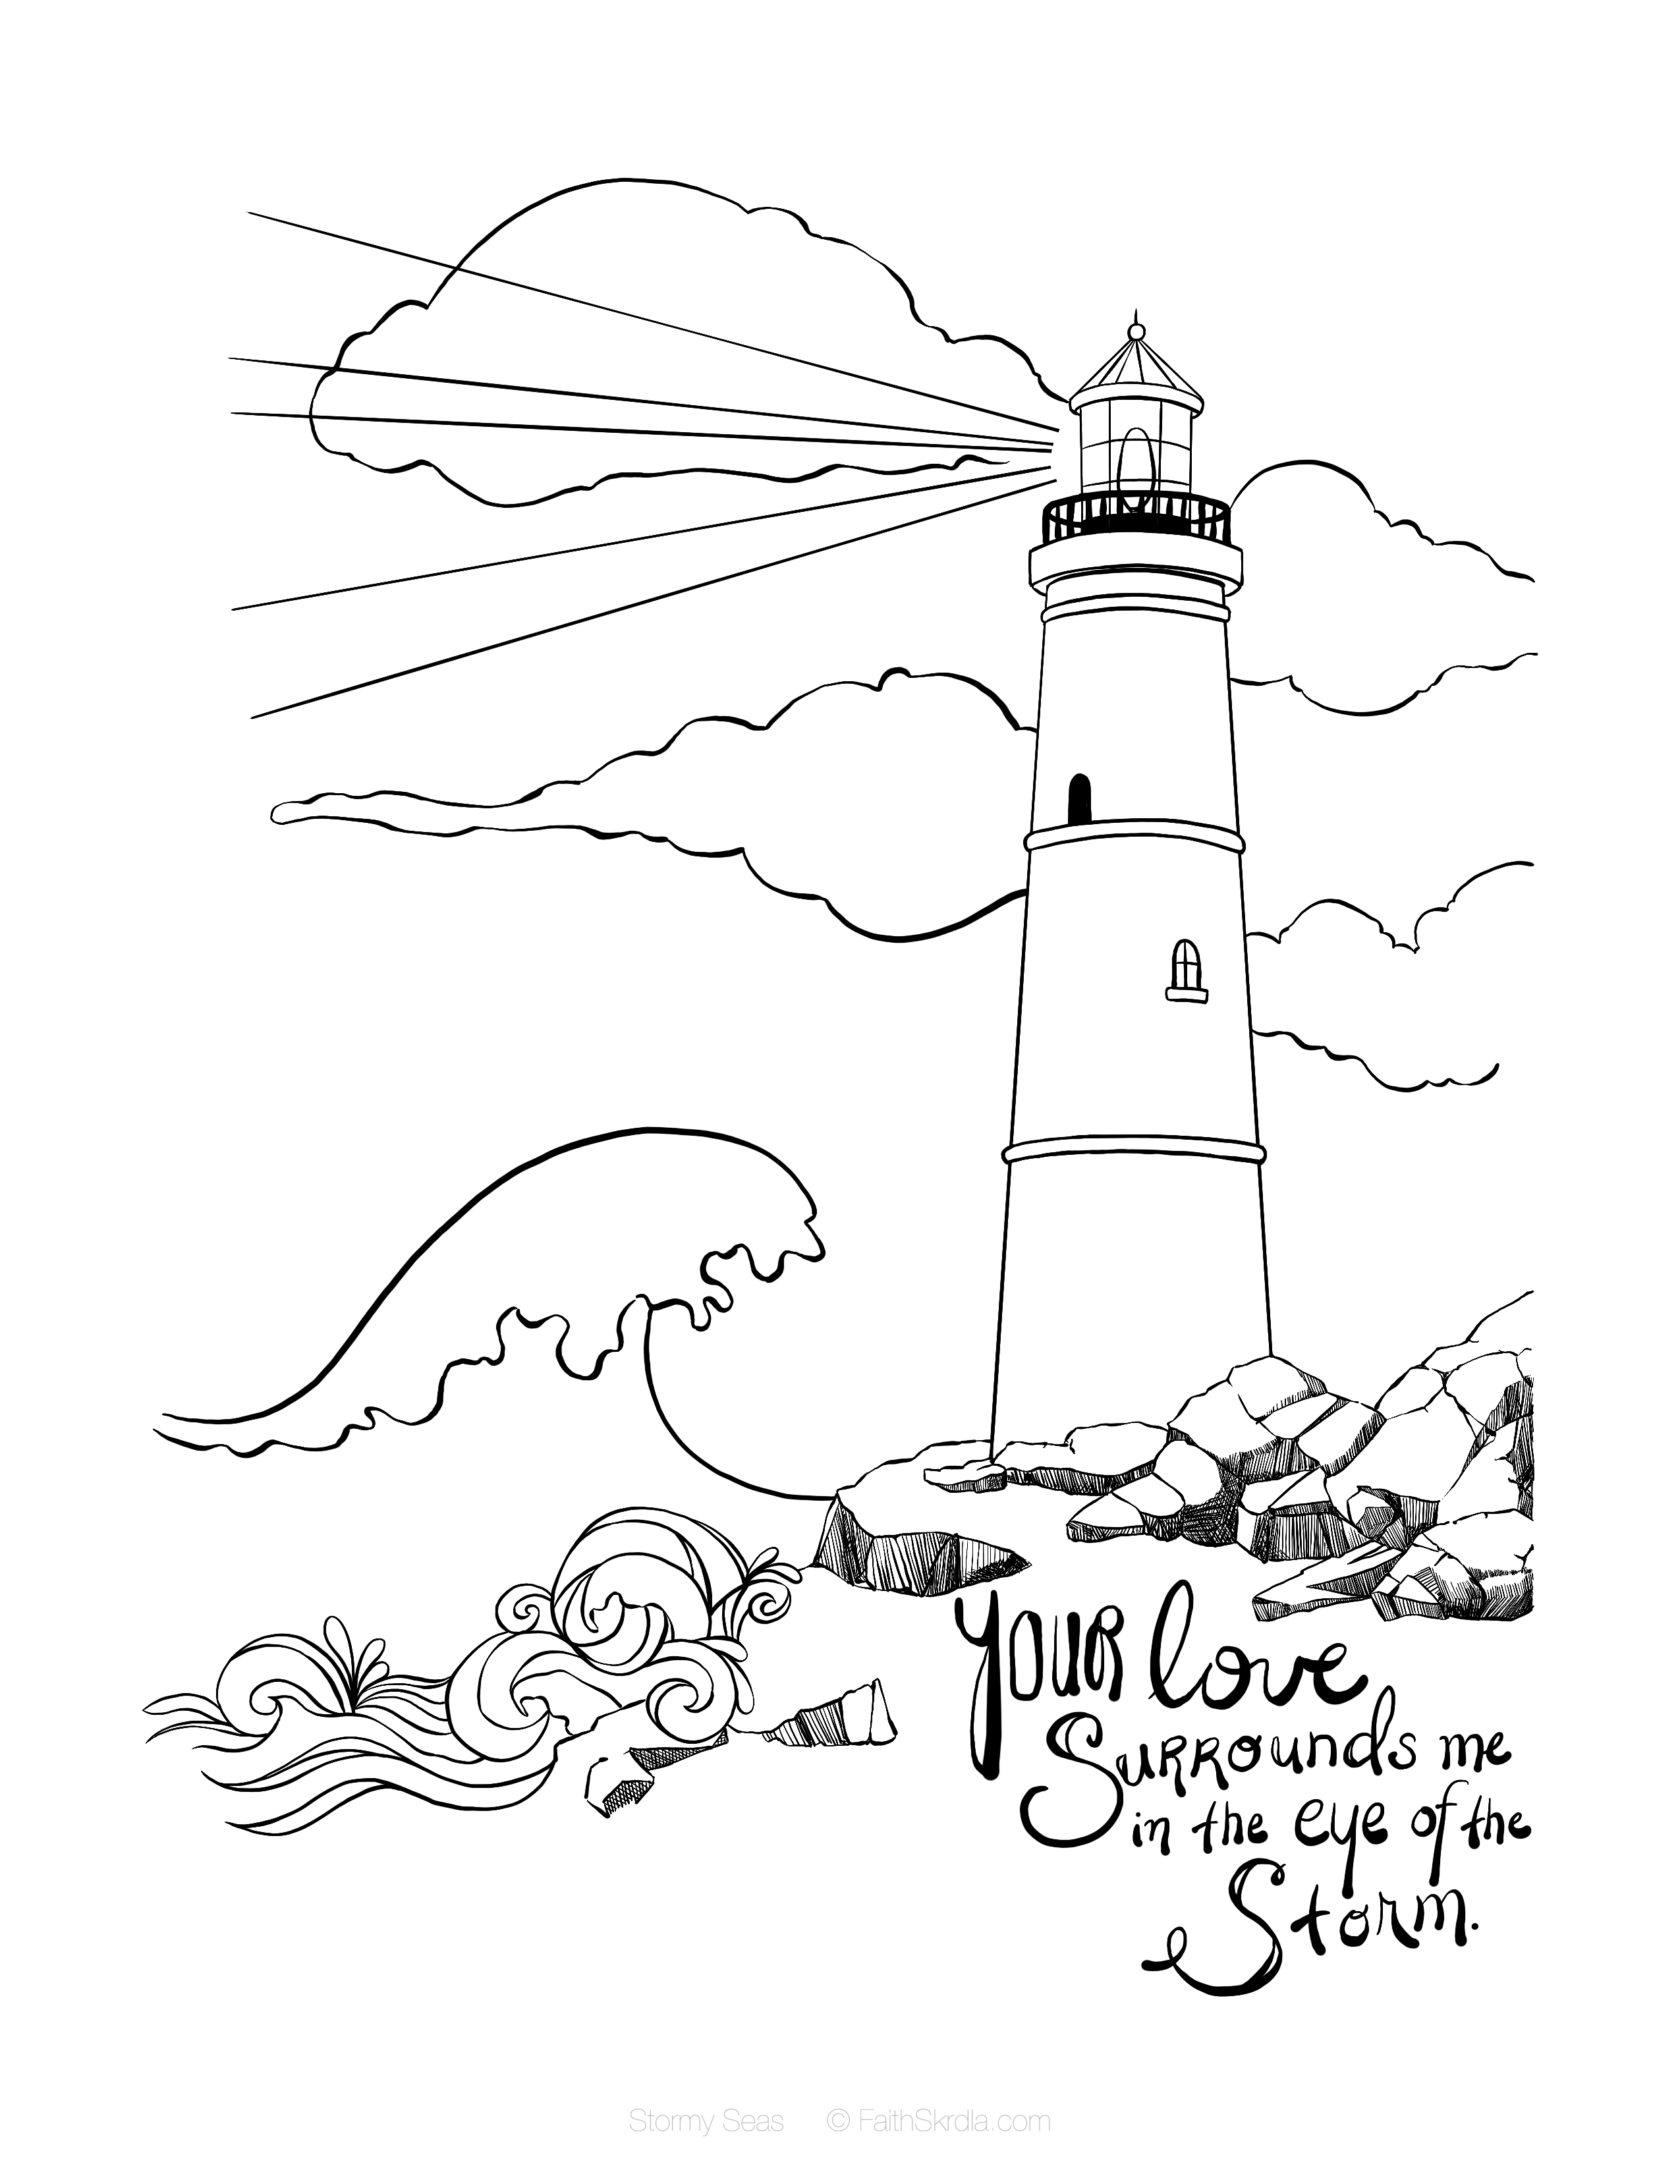 Pin on Christian Coloring Pages-NT